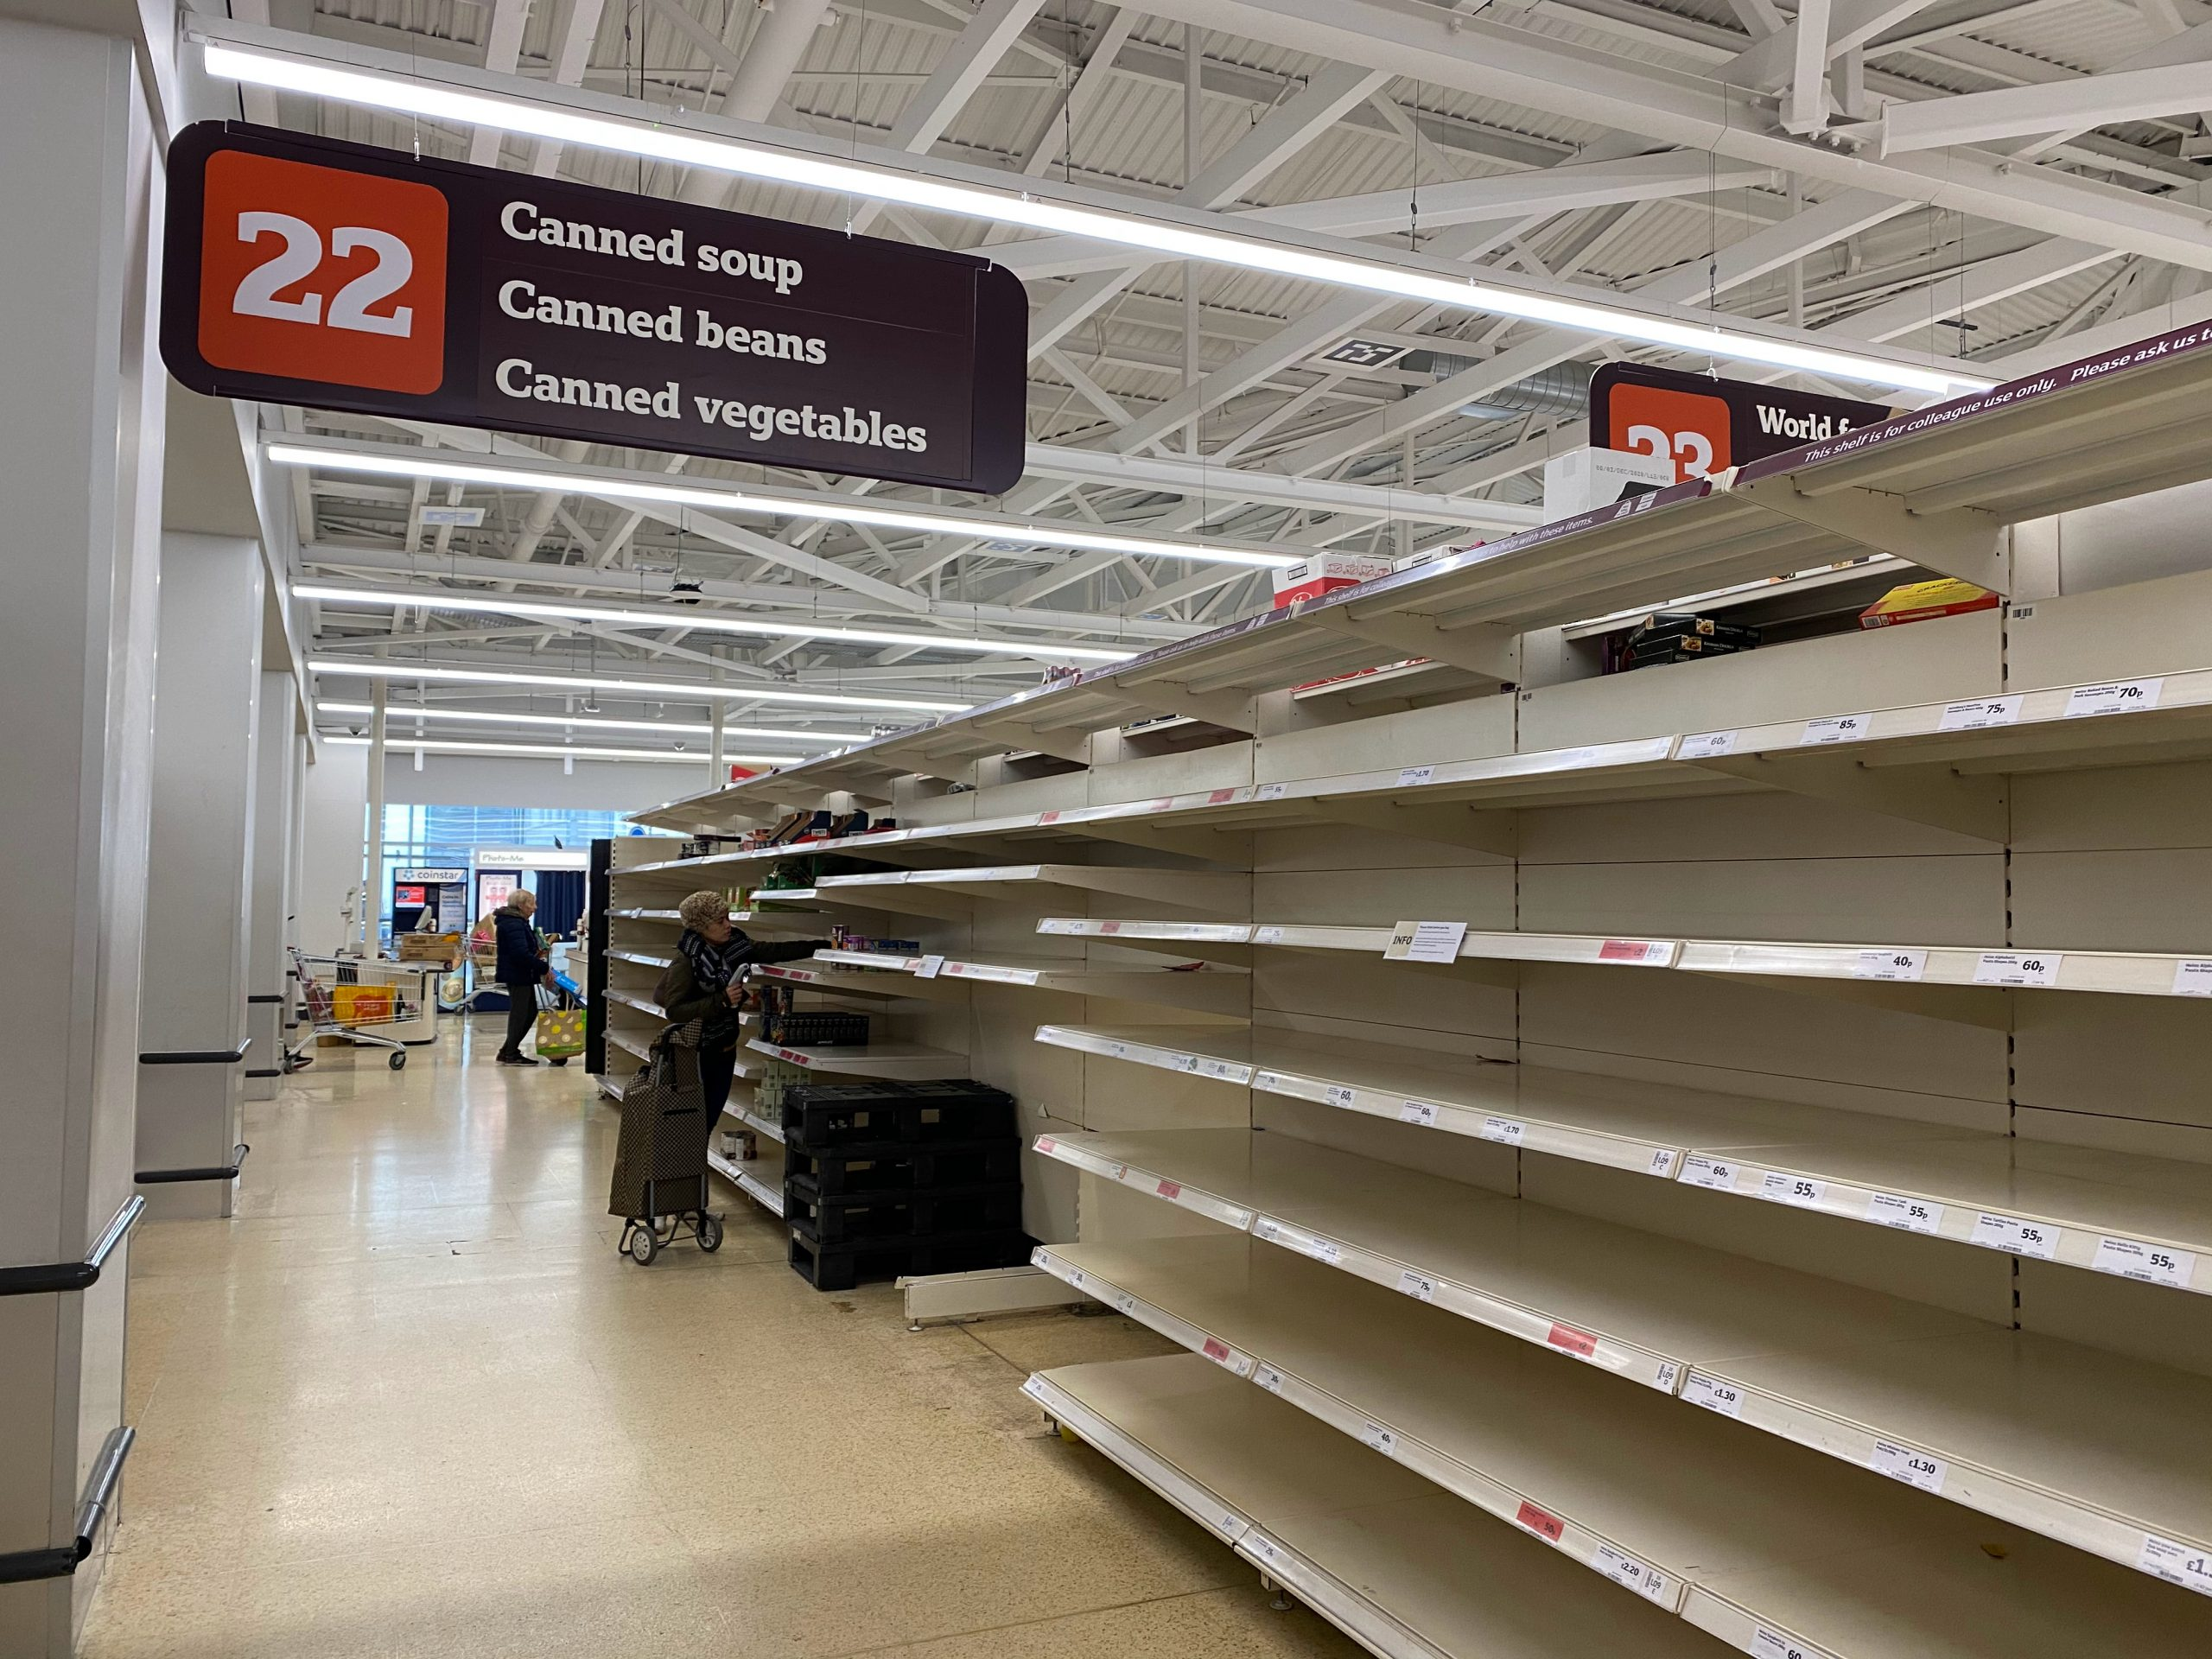 In an article about food inequality, empty grocery store shelves